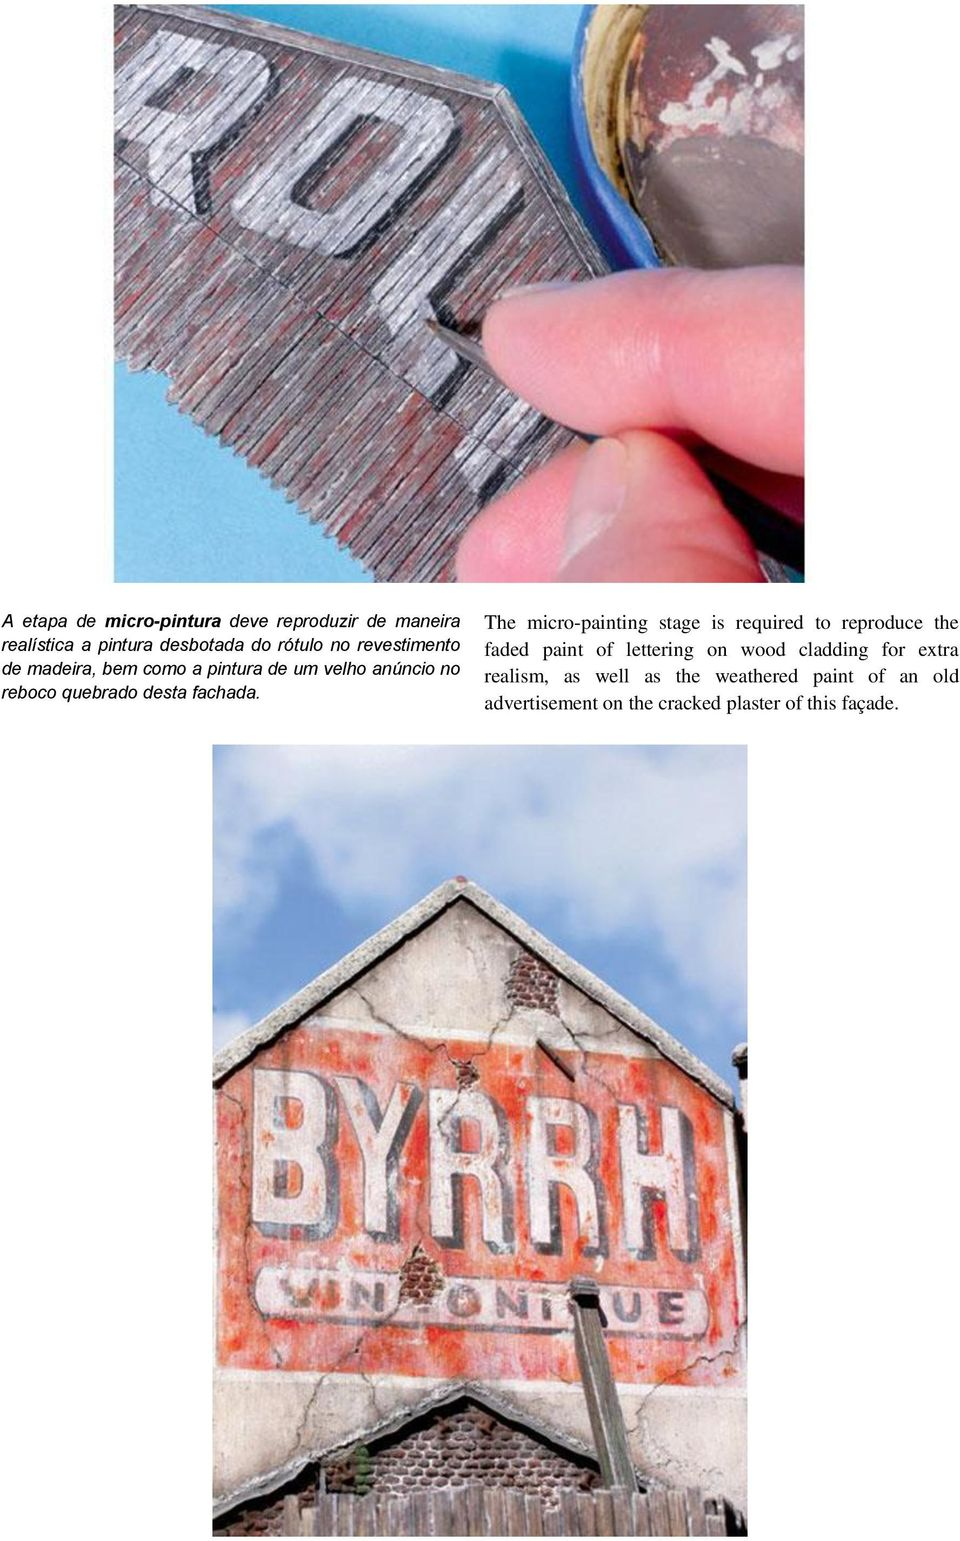 The micro-painting stage is required to reproduce the faded paint of lettering on wood cladding for